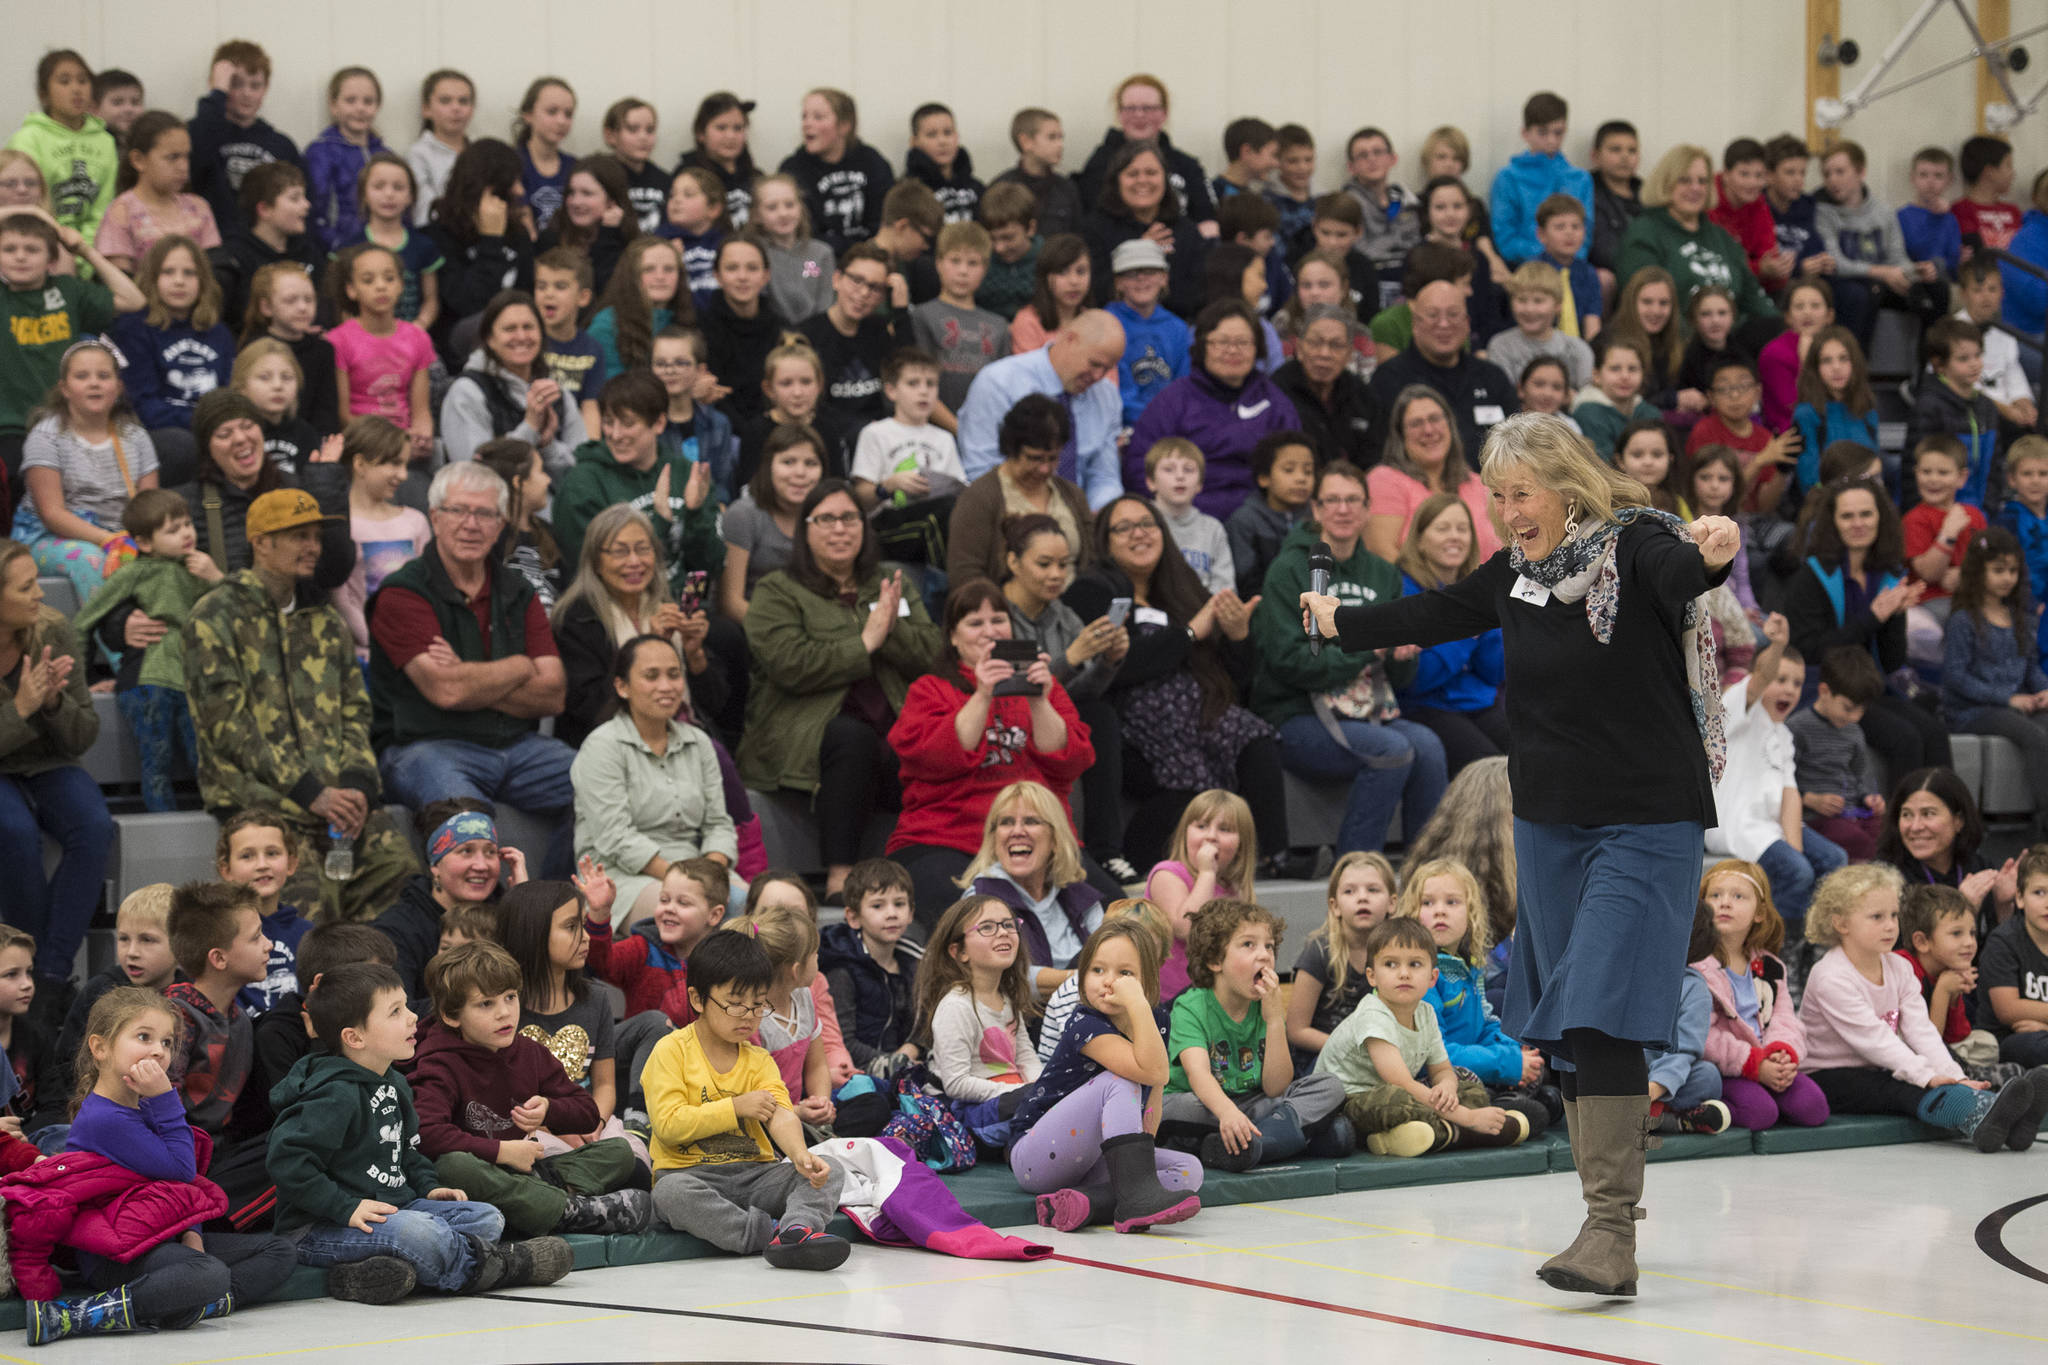 Former teacher Linda Buckley leads Auke Bay Elementary School students in the school song on Friday, Nov. 9, 2018. (Michael Penn | Juneau Empire)